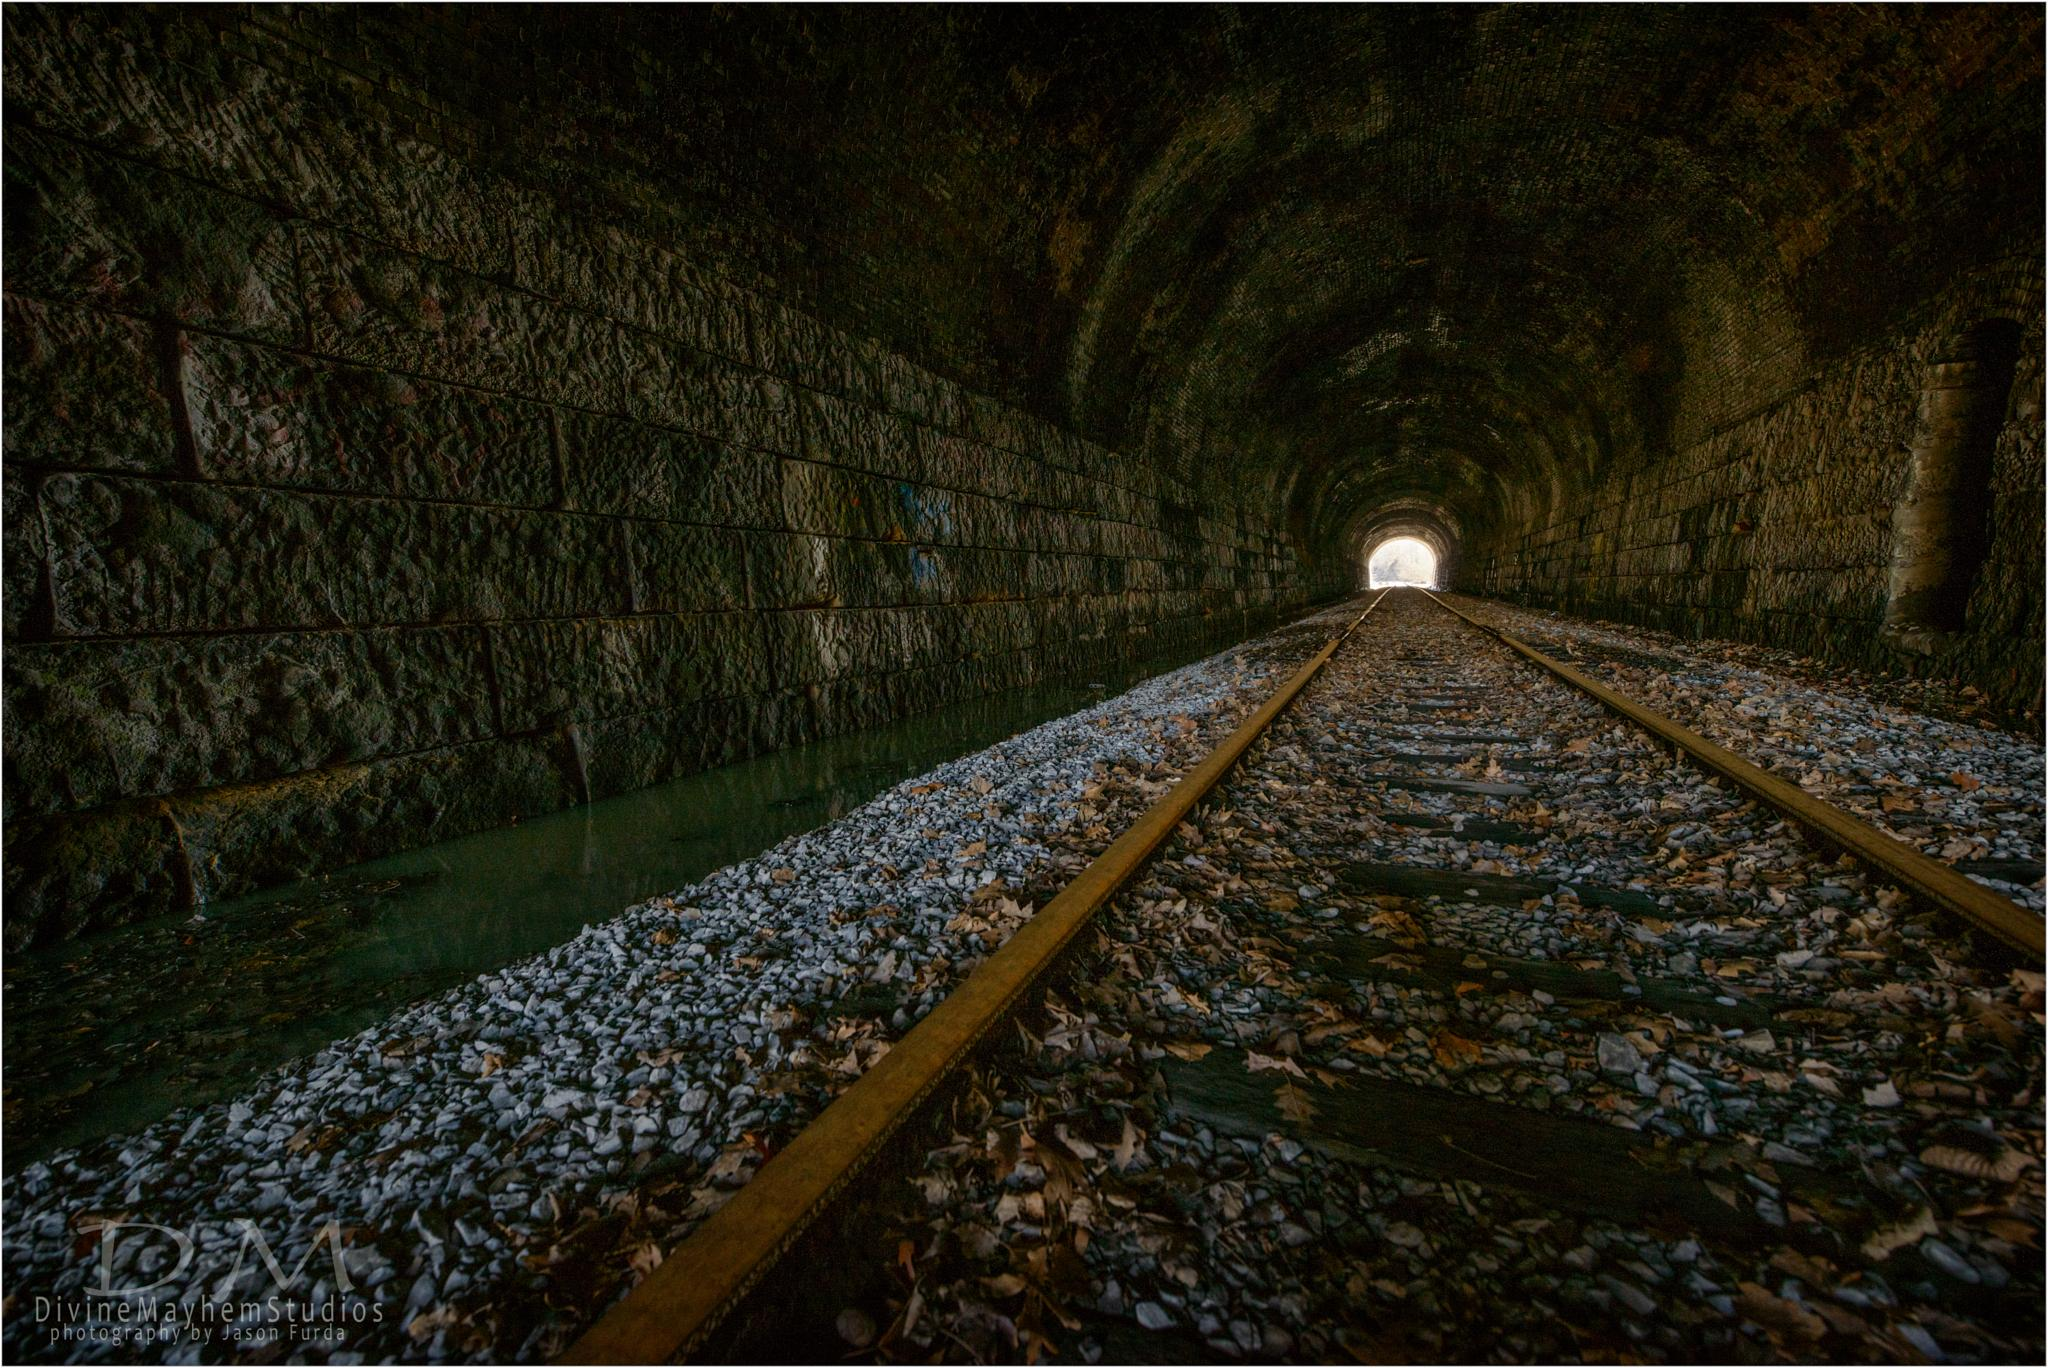 The Textures Of The Tunnel by Jason Furda